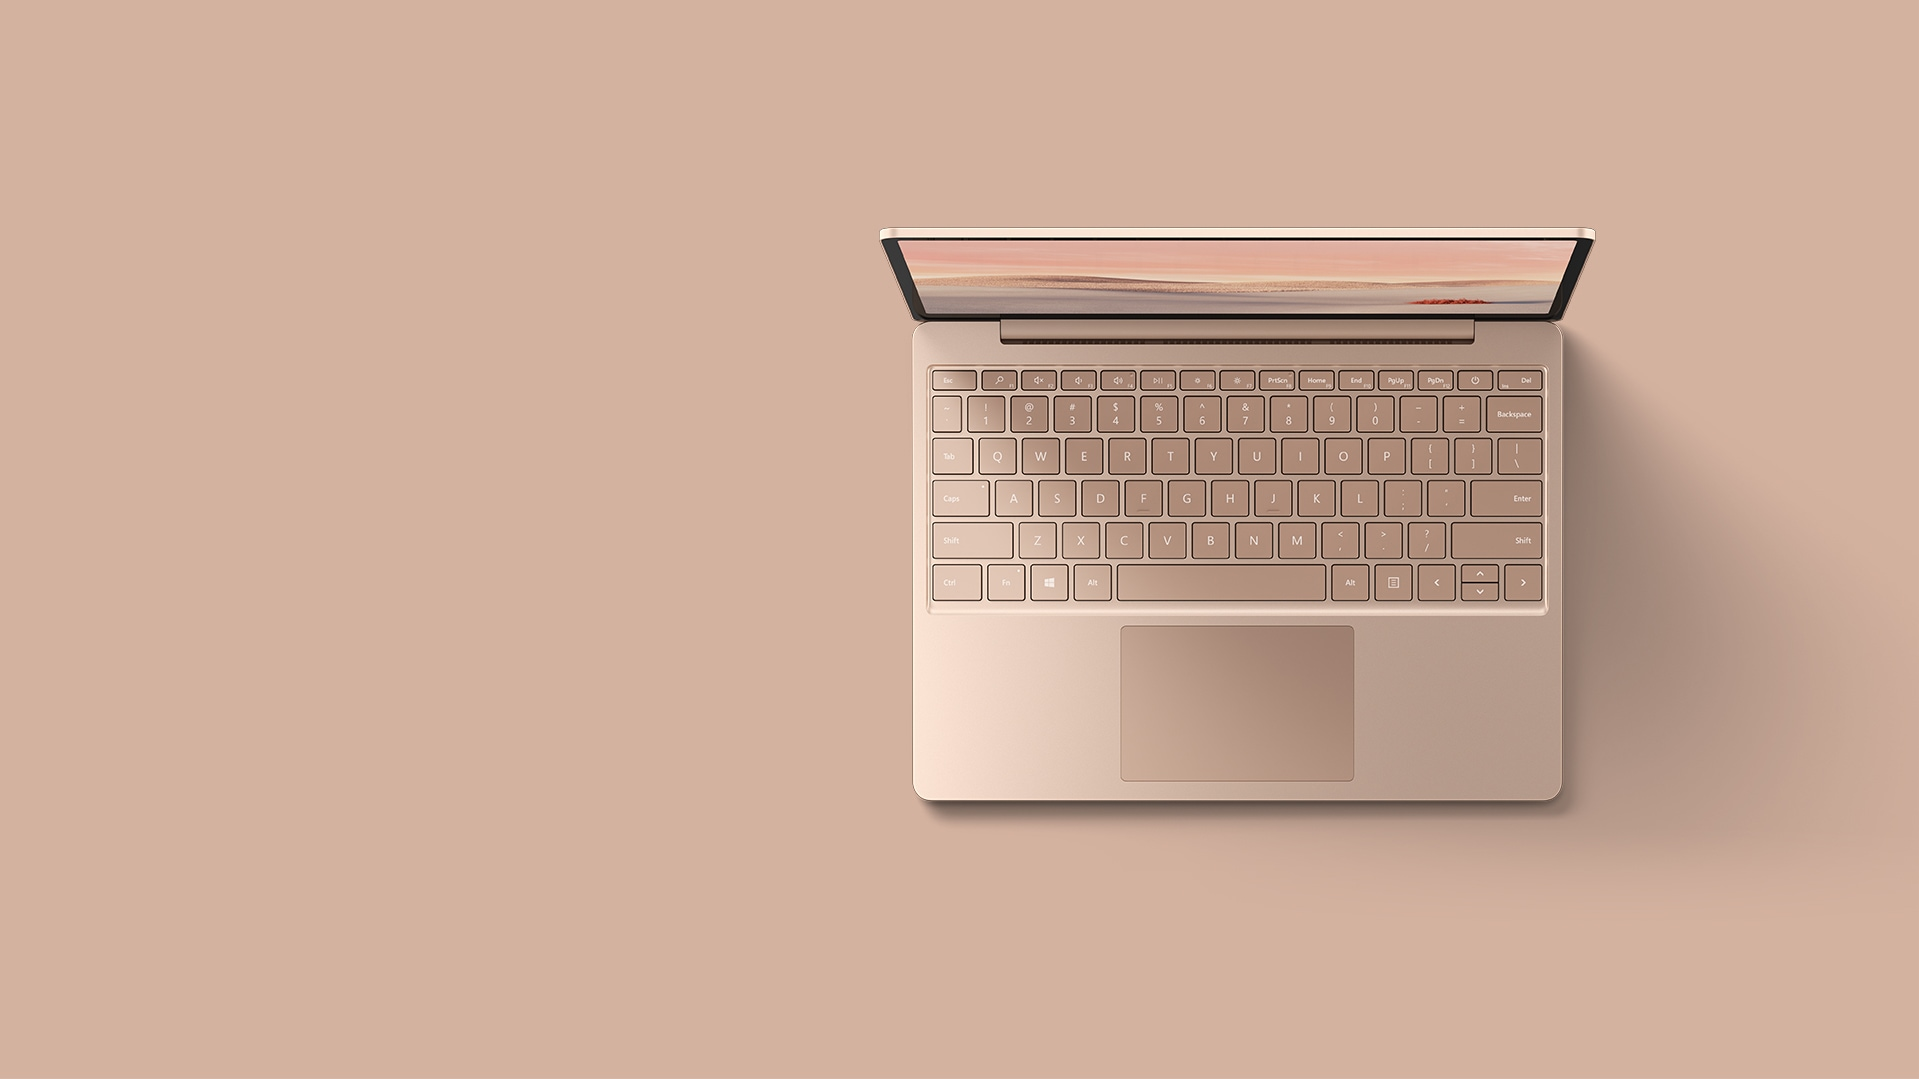 An aerial view of the  sandstone Surface Laptop Go resting upon a matching background.